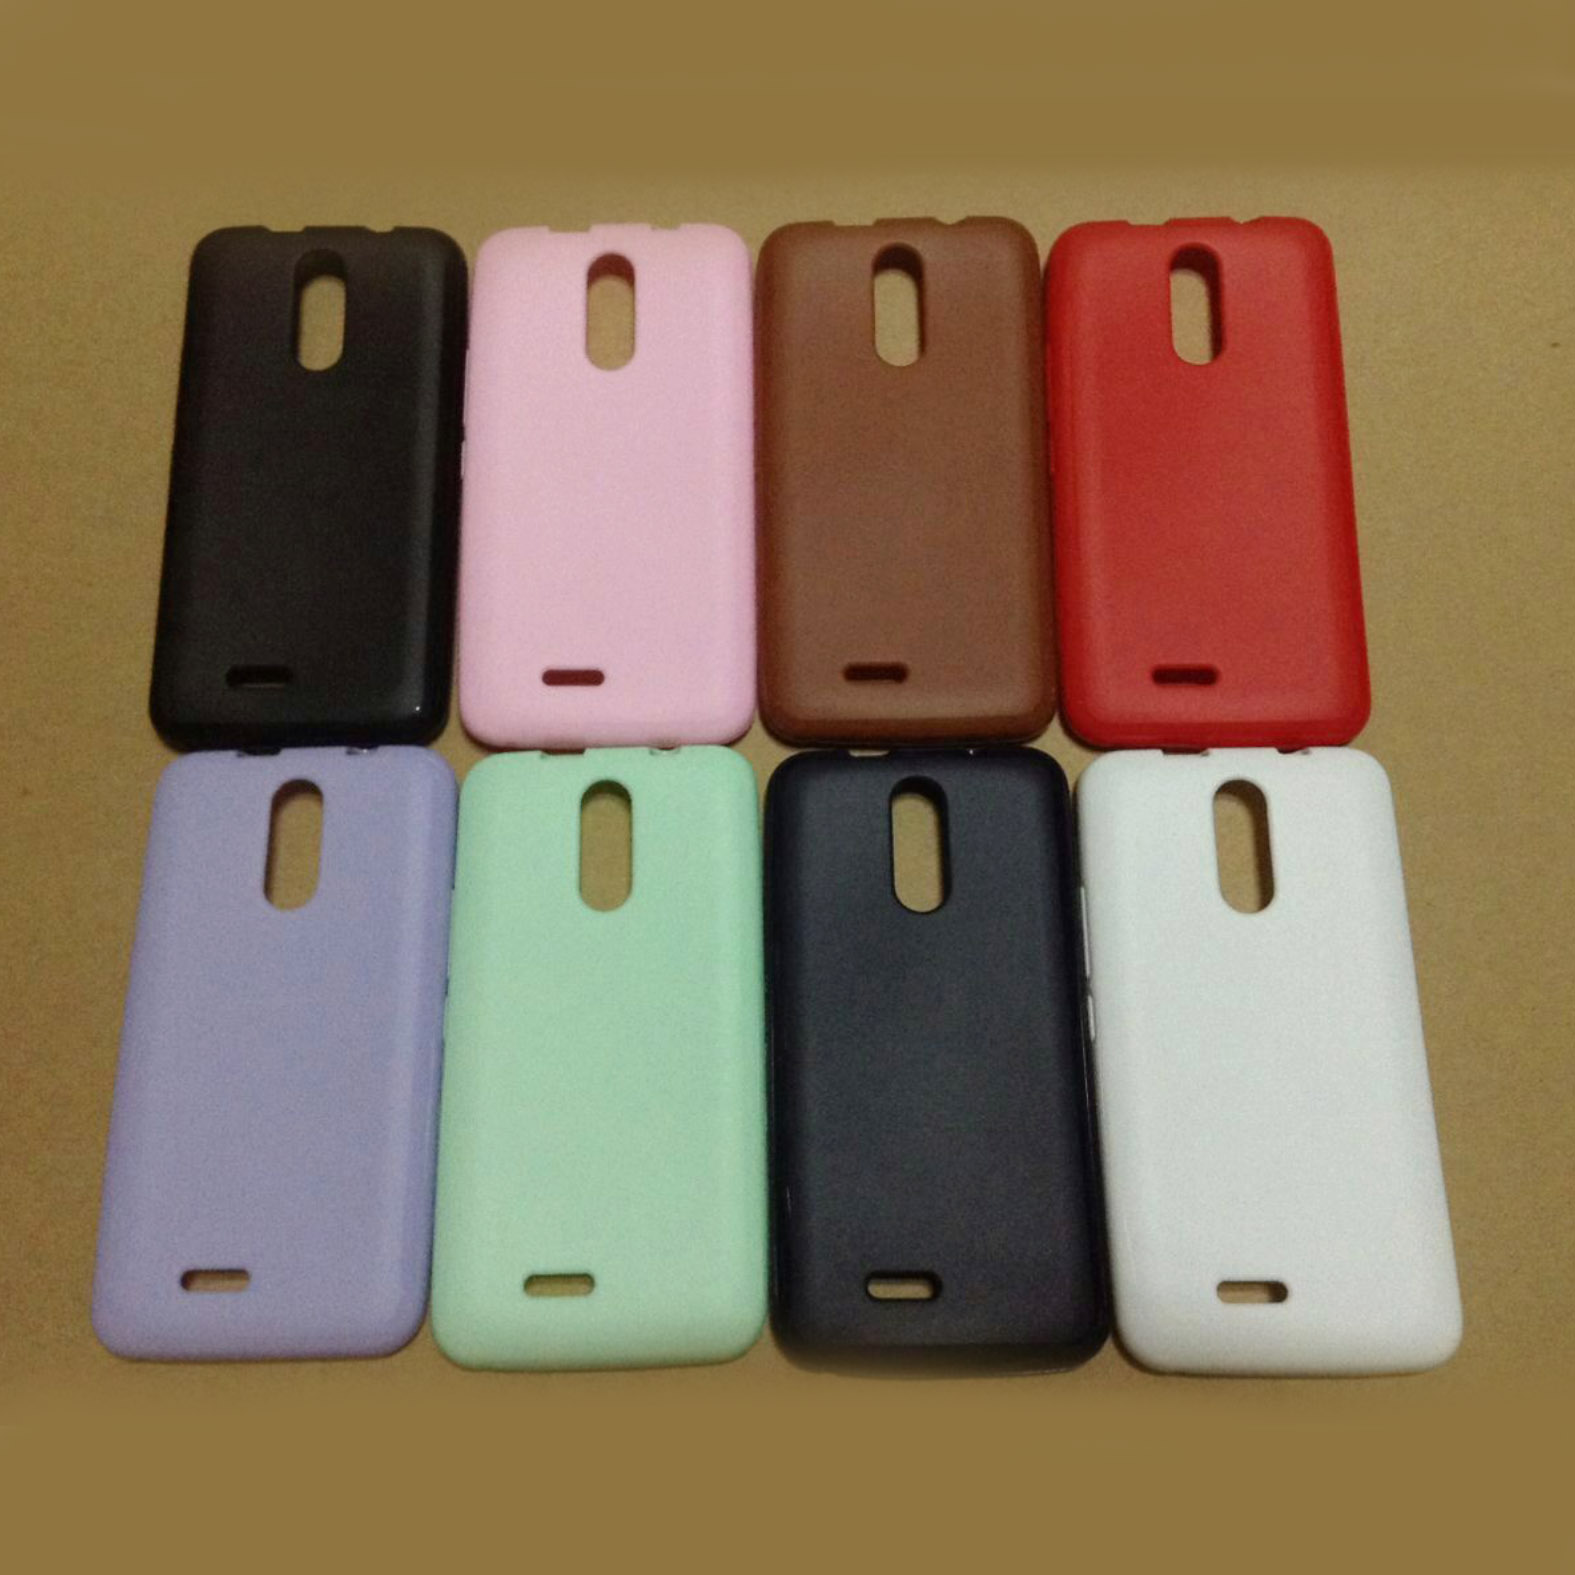 Jual Sarung Hp Advan S5e Welcome To Softshell Soft Case Full View Jelly Glossy Nxt Silikon